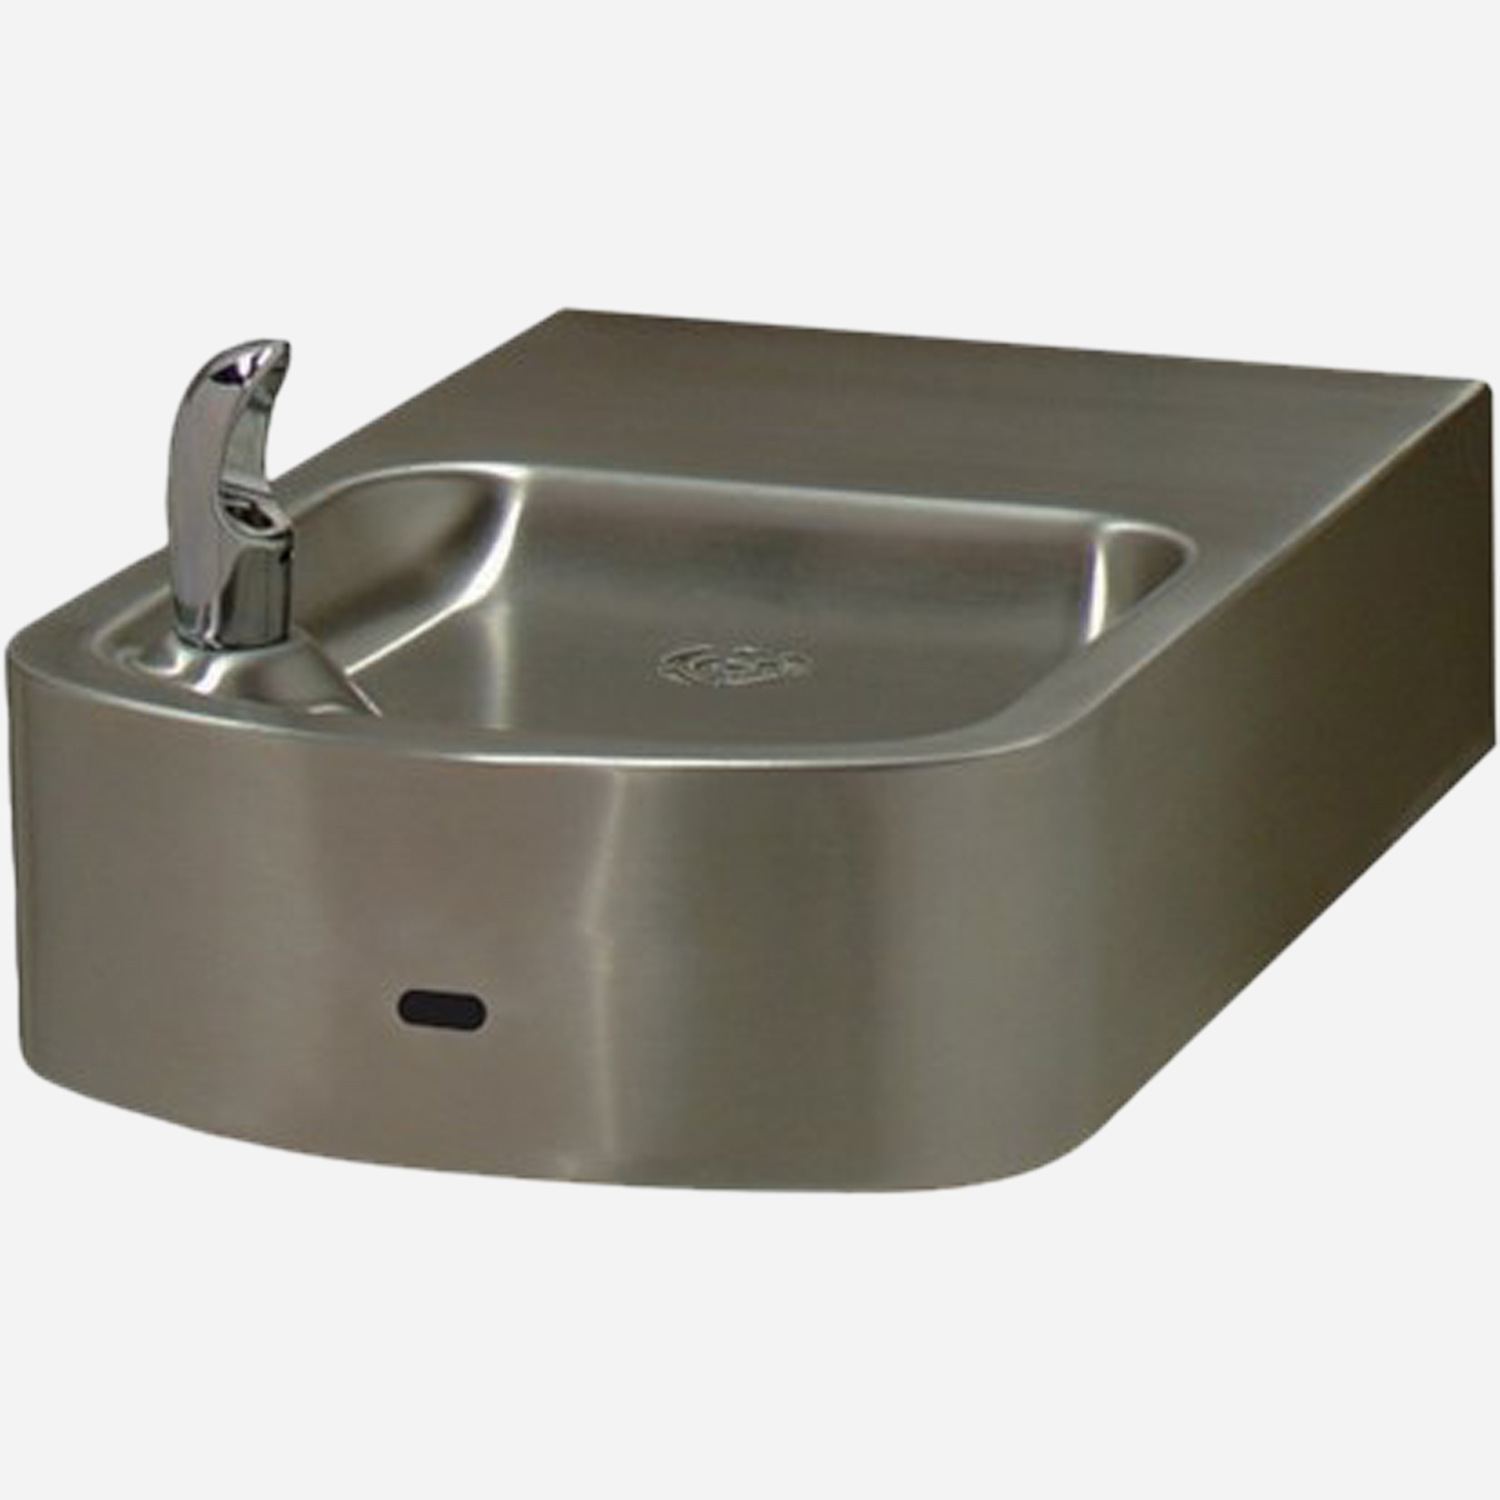 4 Gage Box Style Indoor Drinking Fountain